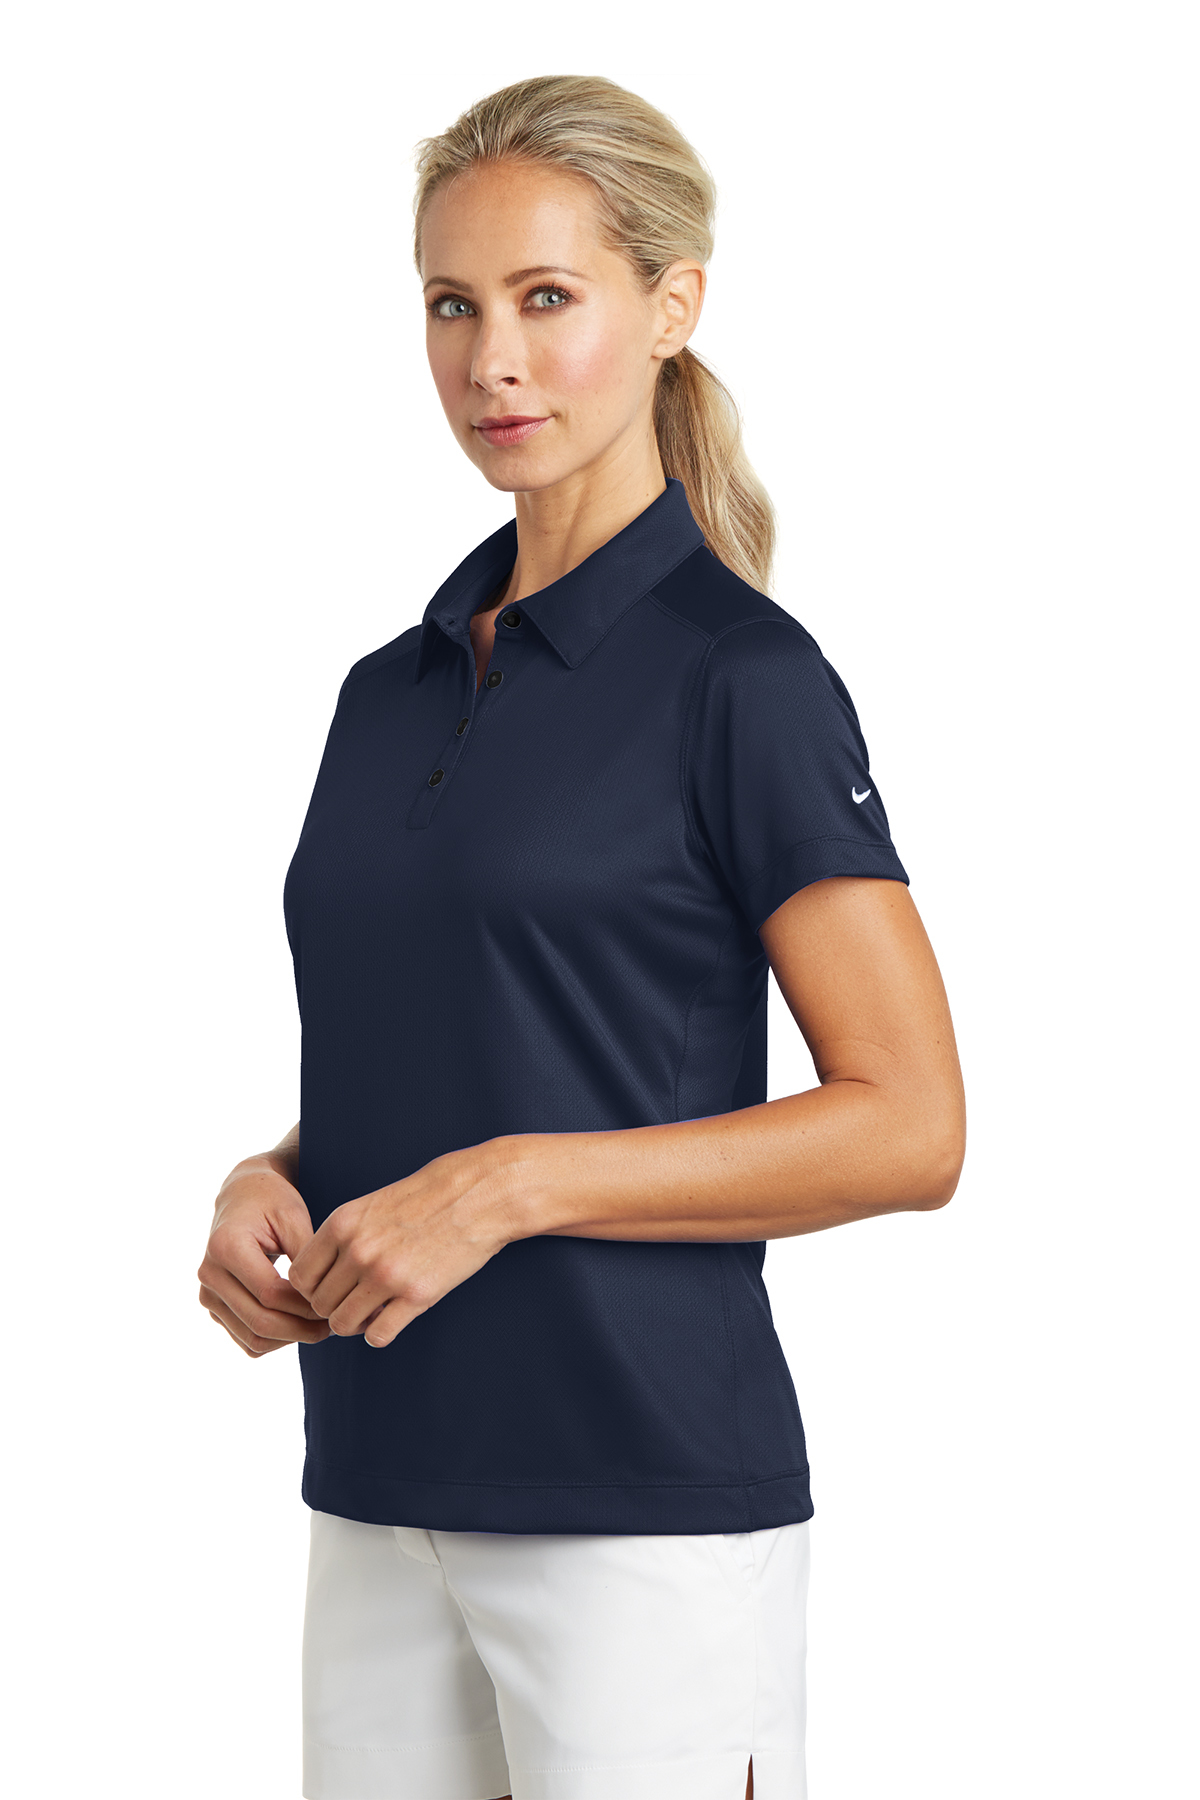 Nike Ladies Dri Fit Pebble Texture Polo Ladieswomen Polosknits